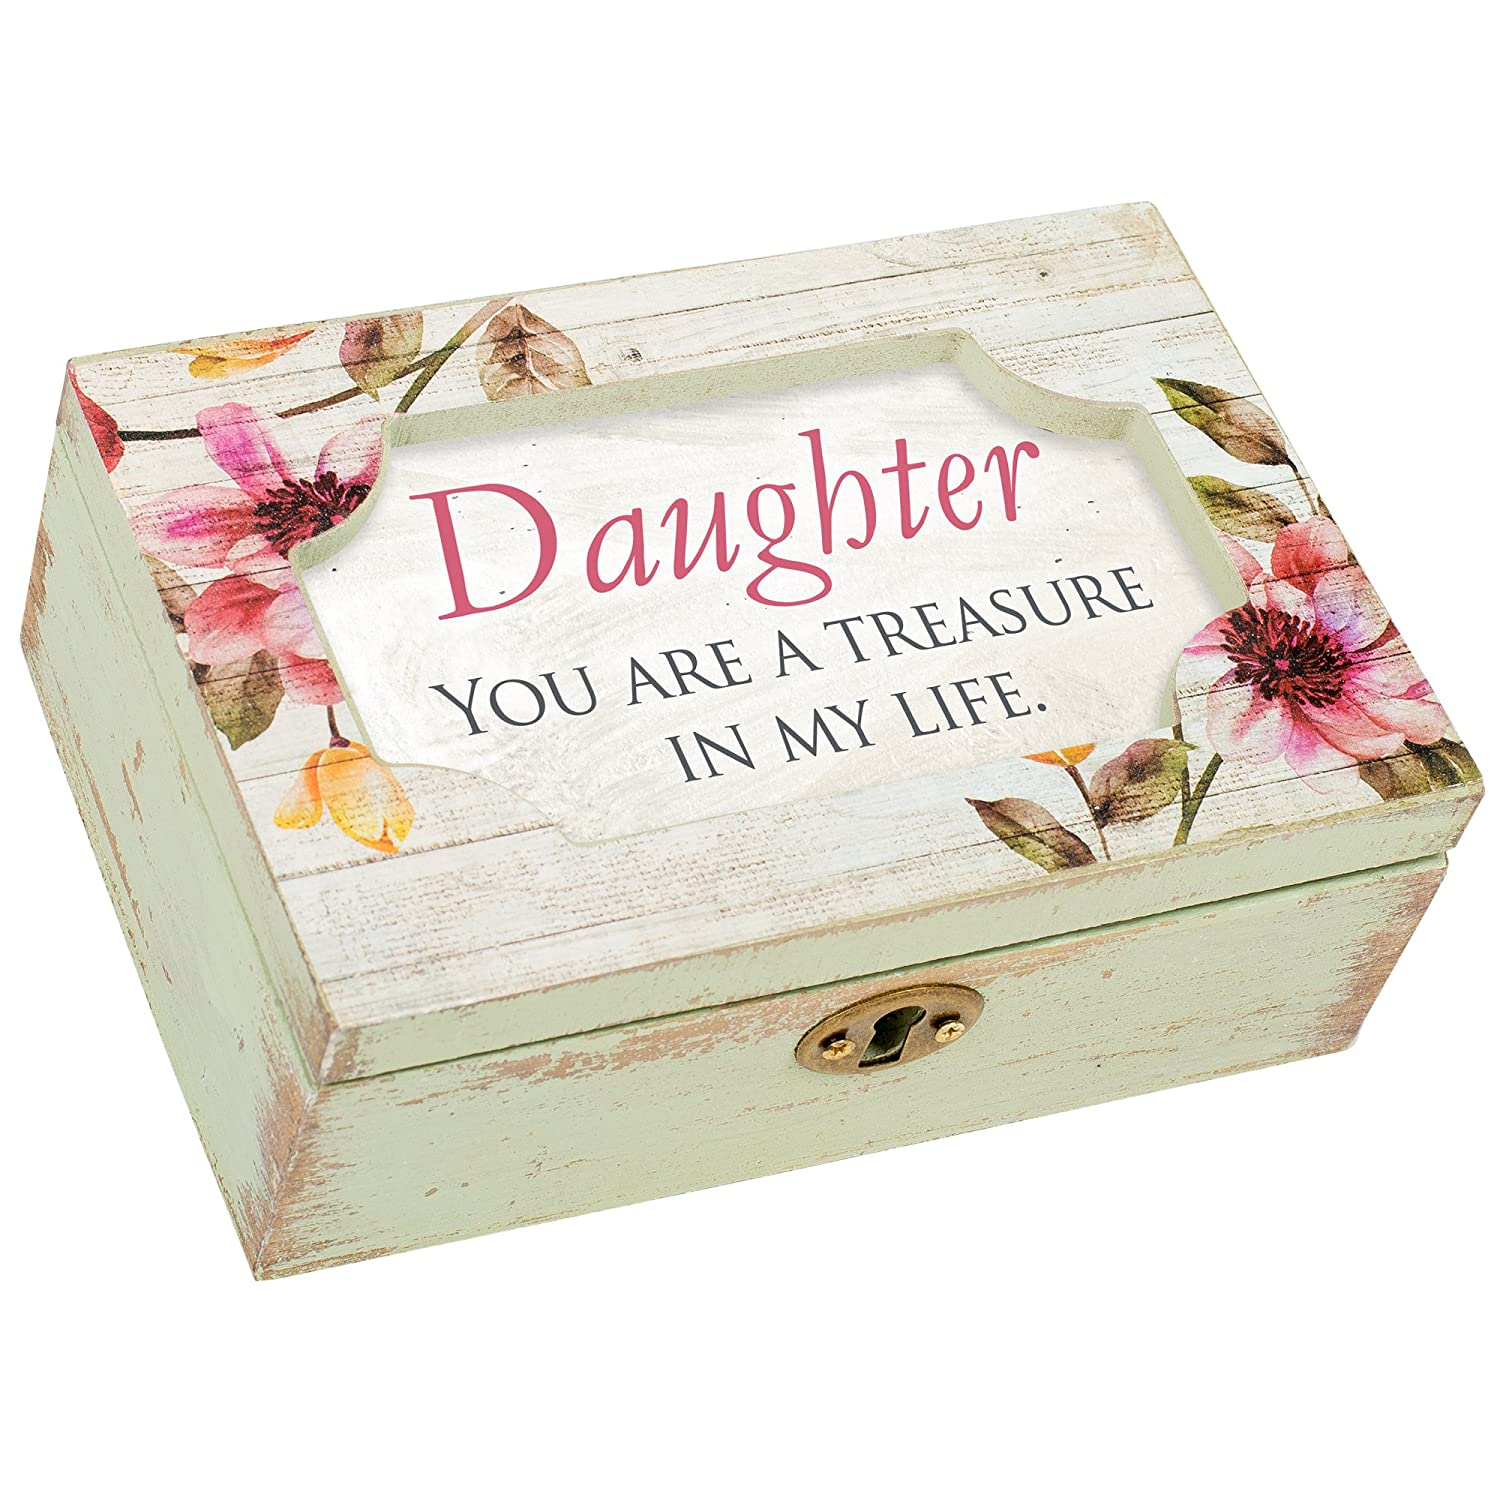 Cottage Garden Daughter Decoupage Echinacea Floral Petite Music Musical Box Plays Tune You Light Up My Life